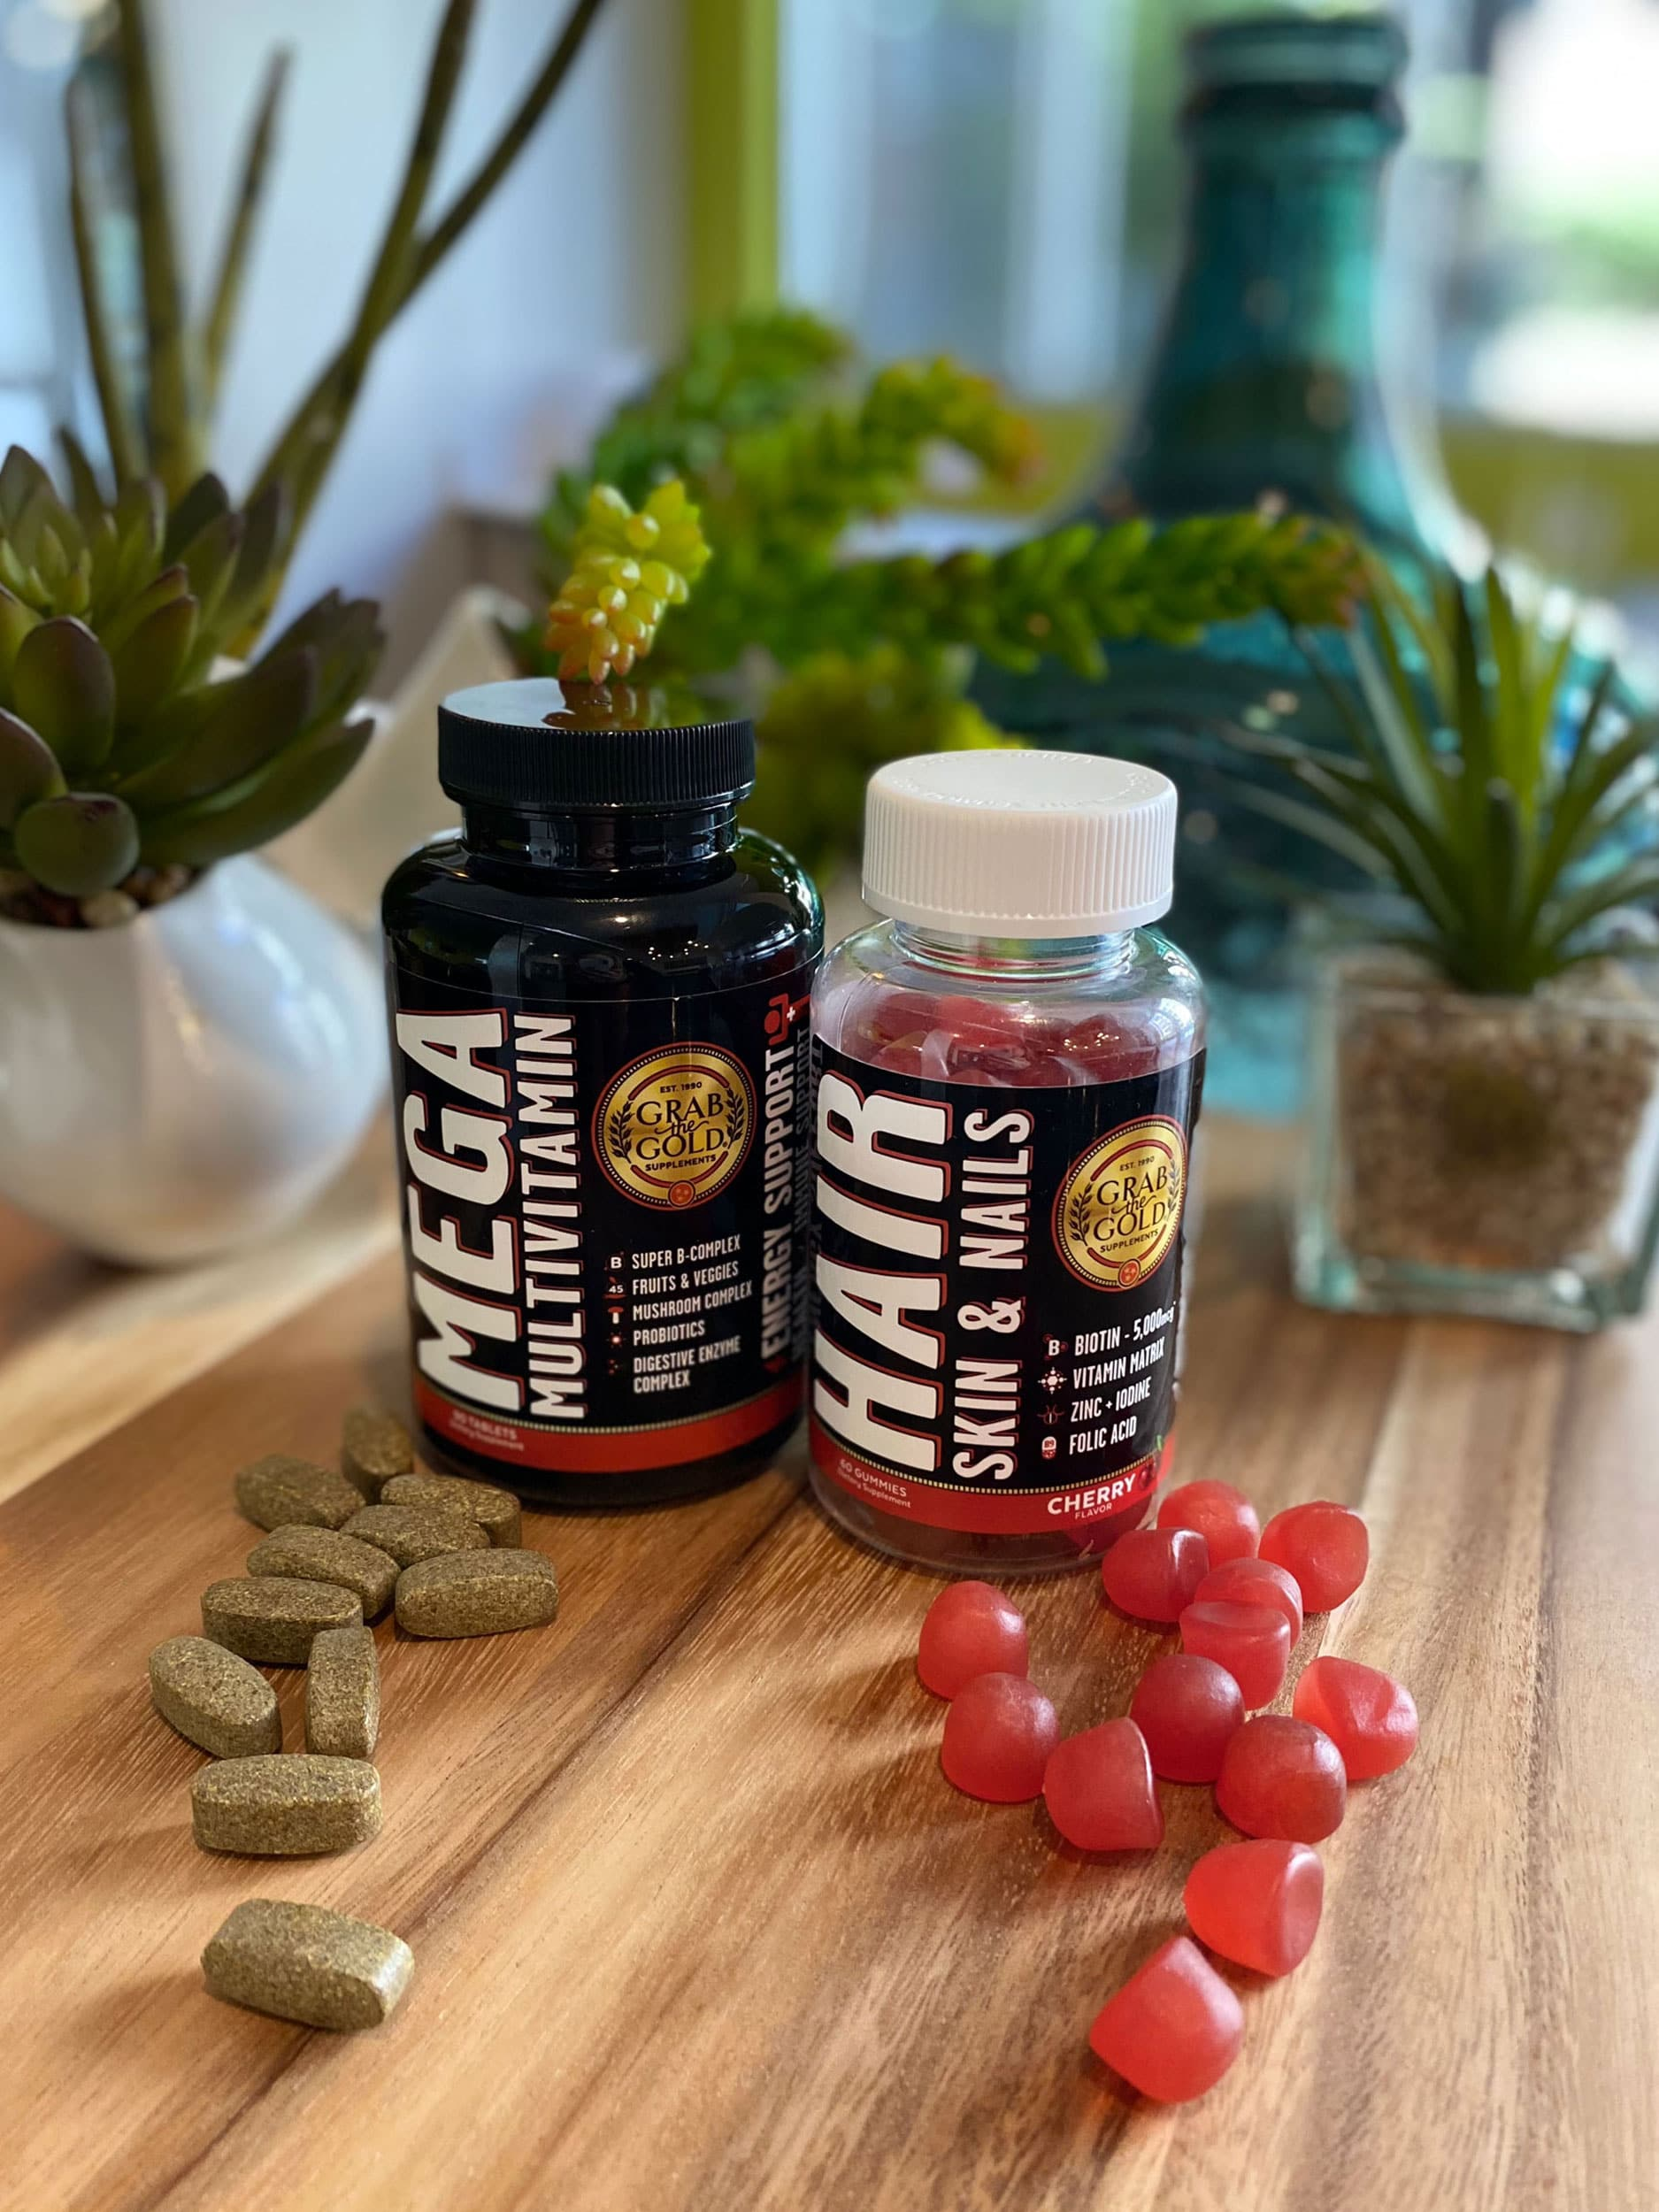 grab the gold daily health supplements